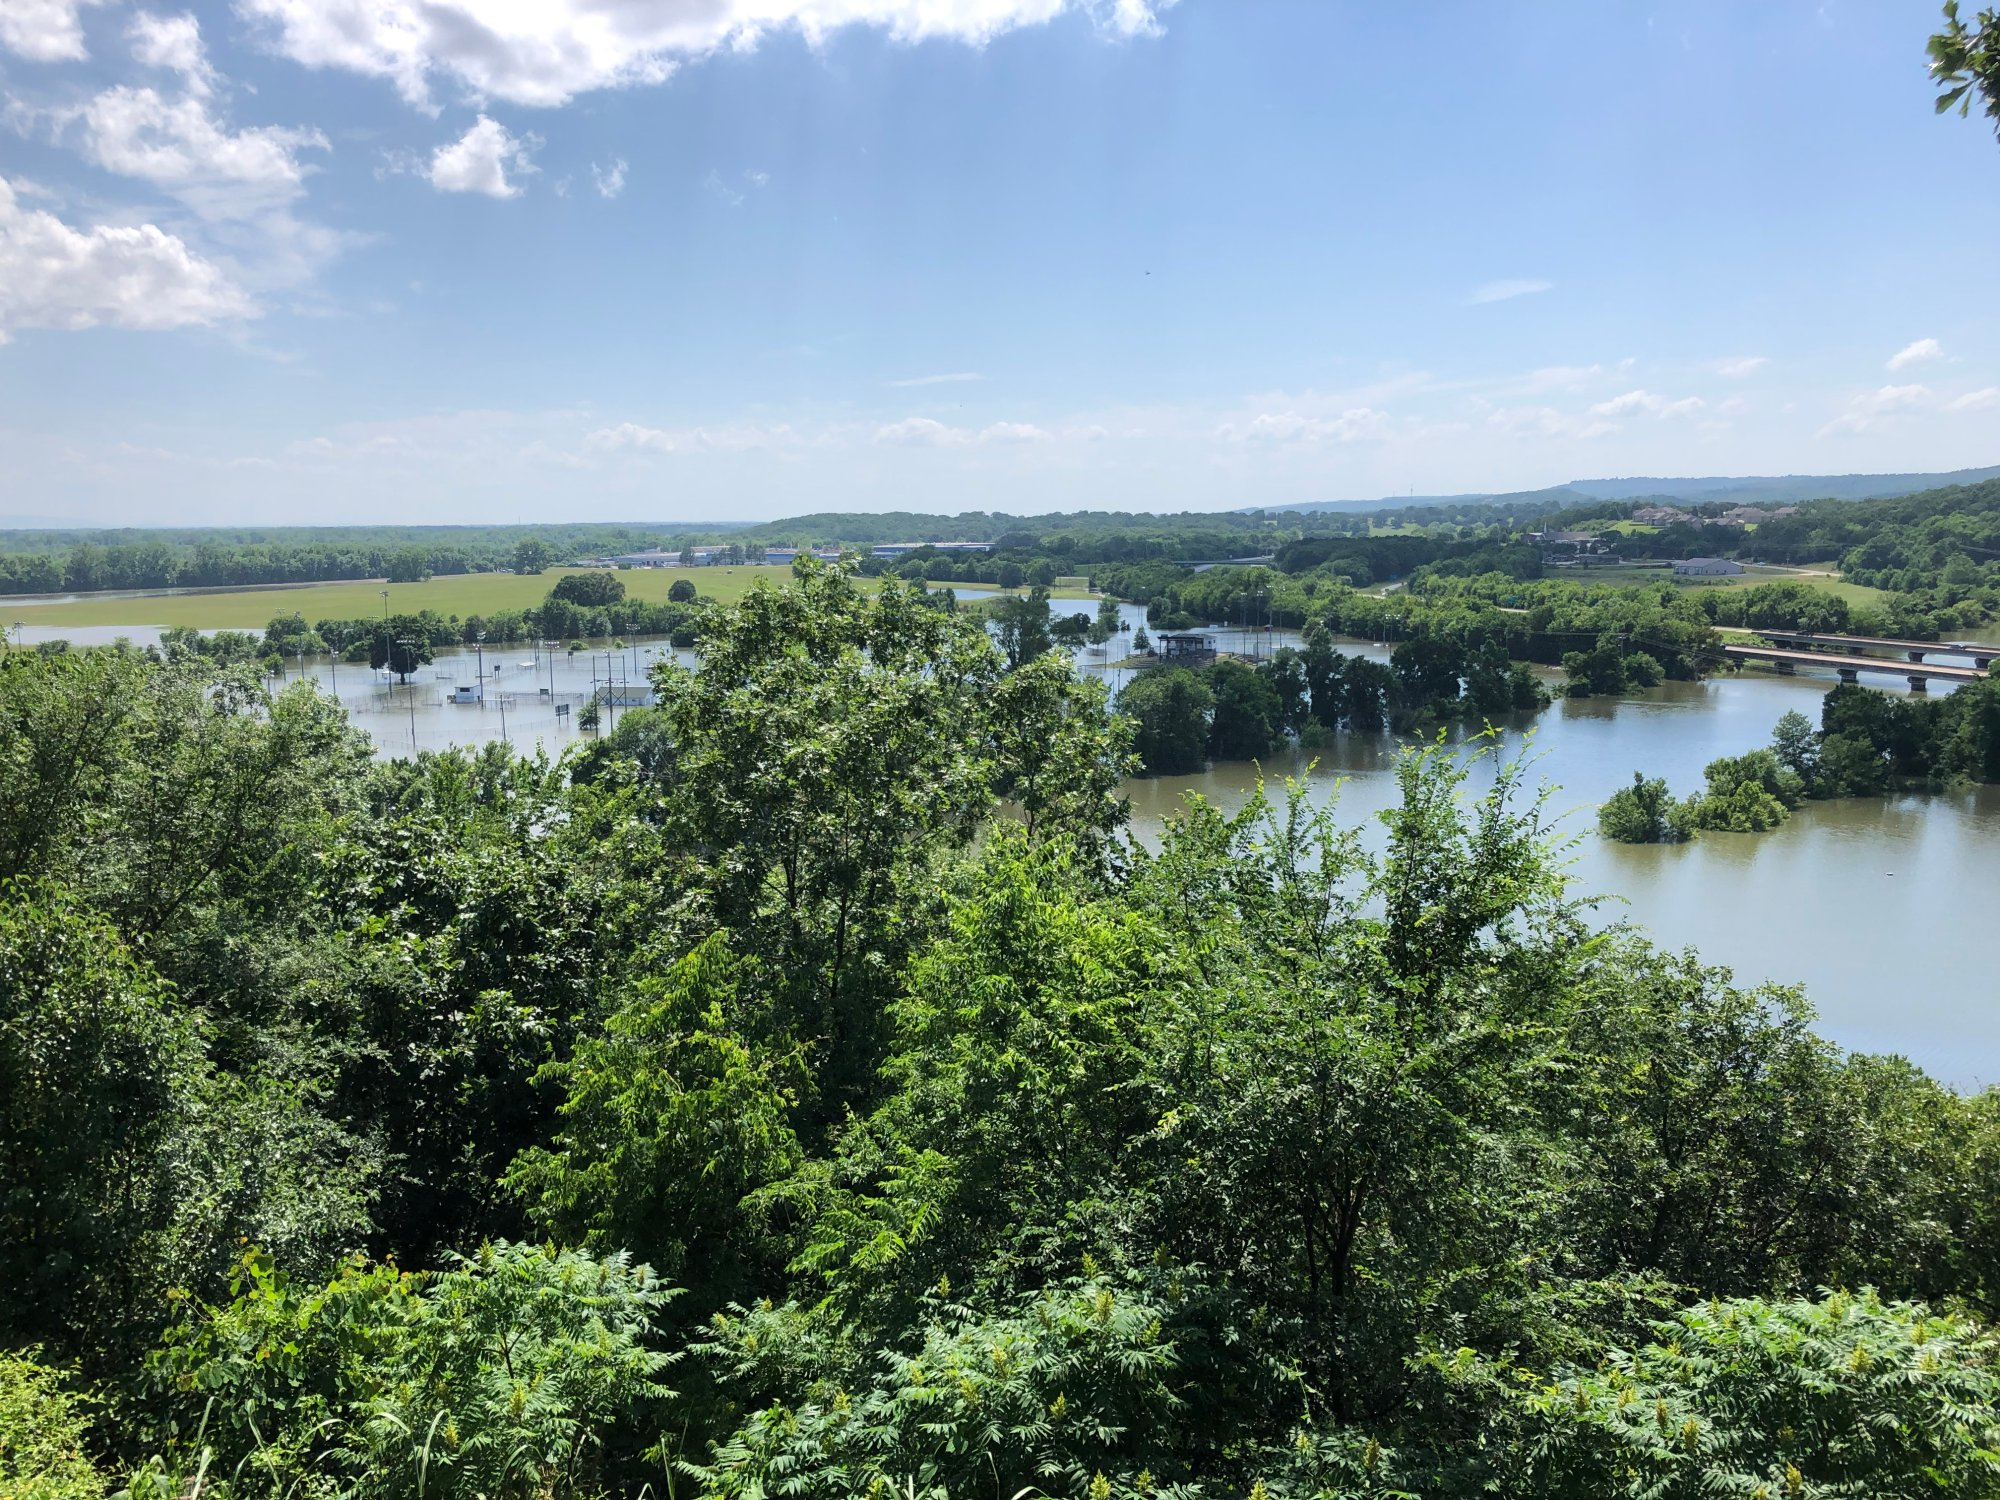 Field of Dreams and Lee Creek from bluff in Vista North in Van Buren, courtesy of Richard Threadgill.  5-24-19